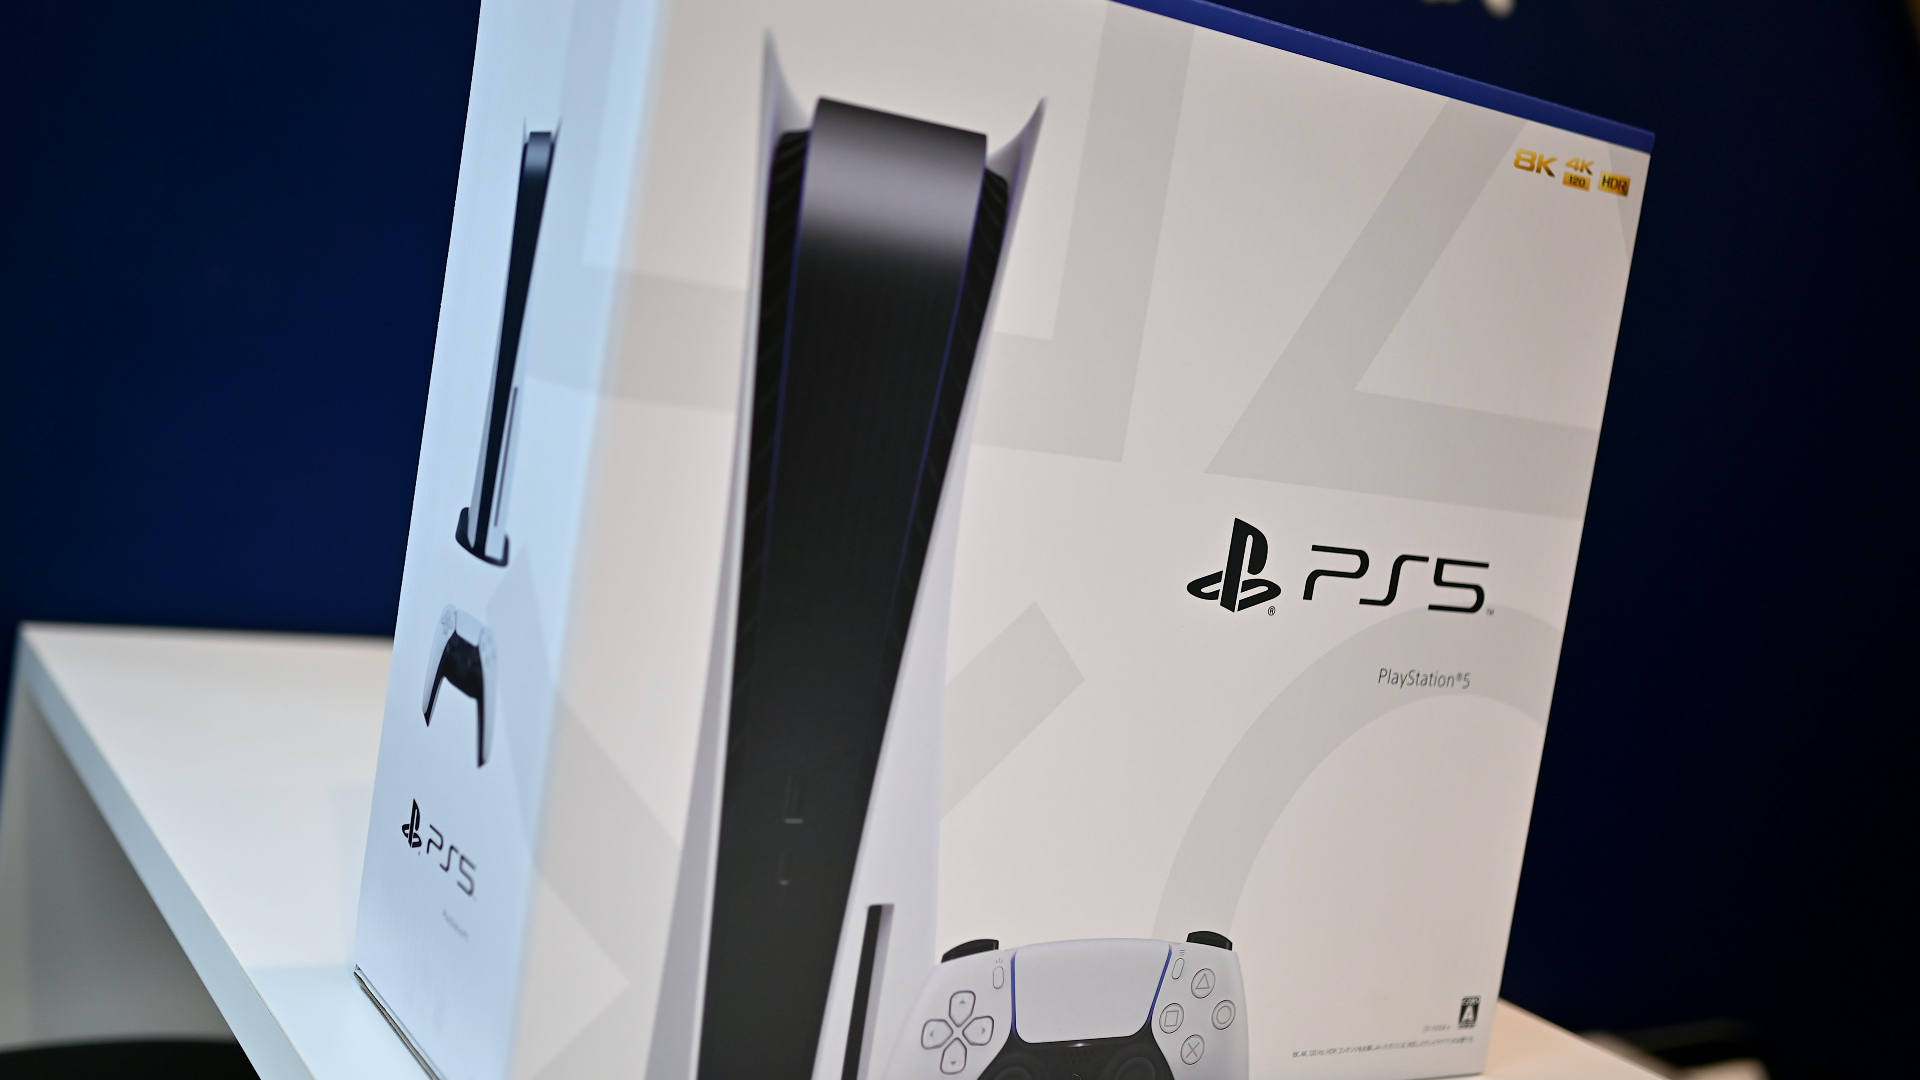 PS5 release 2020: What time PlayStation goes on sale, stores that could have it in stock